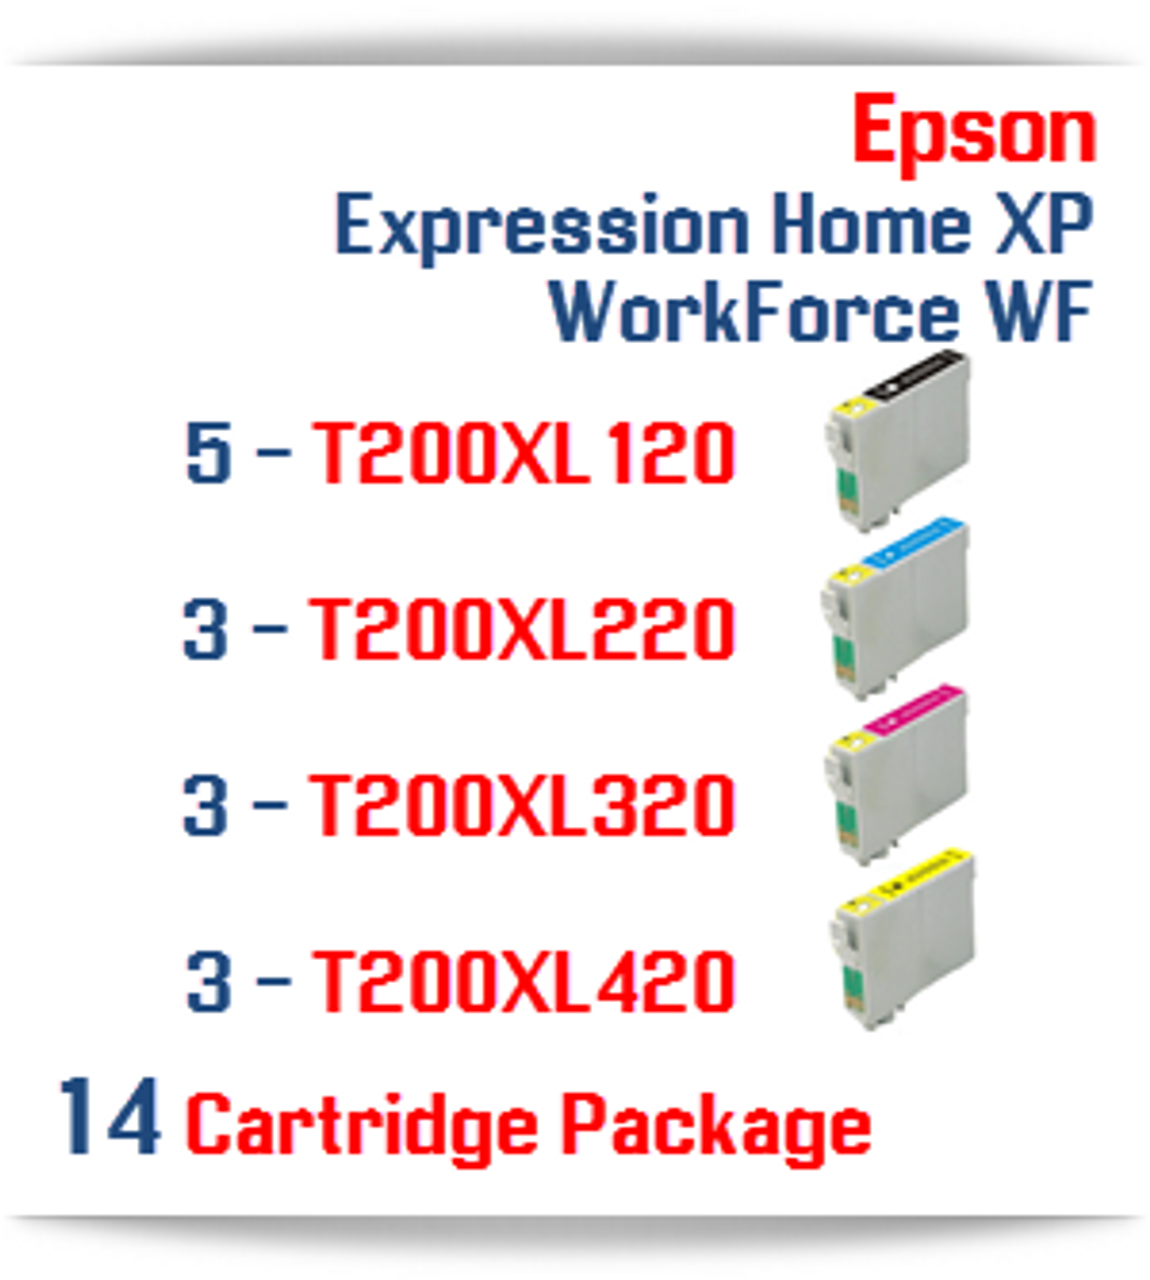 14 Cartridge Package - Cartridges Included: 5 Black, 3 Cyan, 3 Magenta, 3 Yellow Epson Expression Home XP,  WorkForce WF Compatible Ink Cartridges